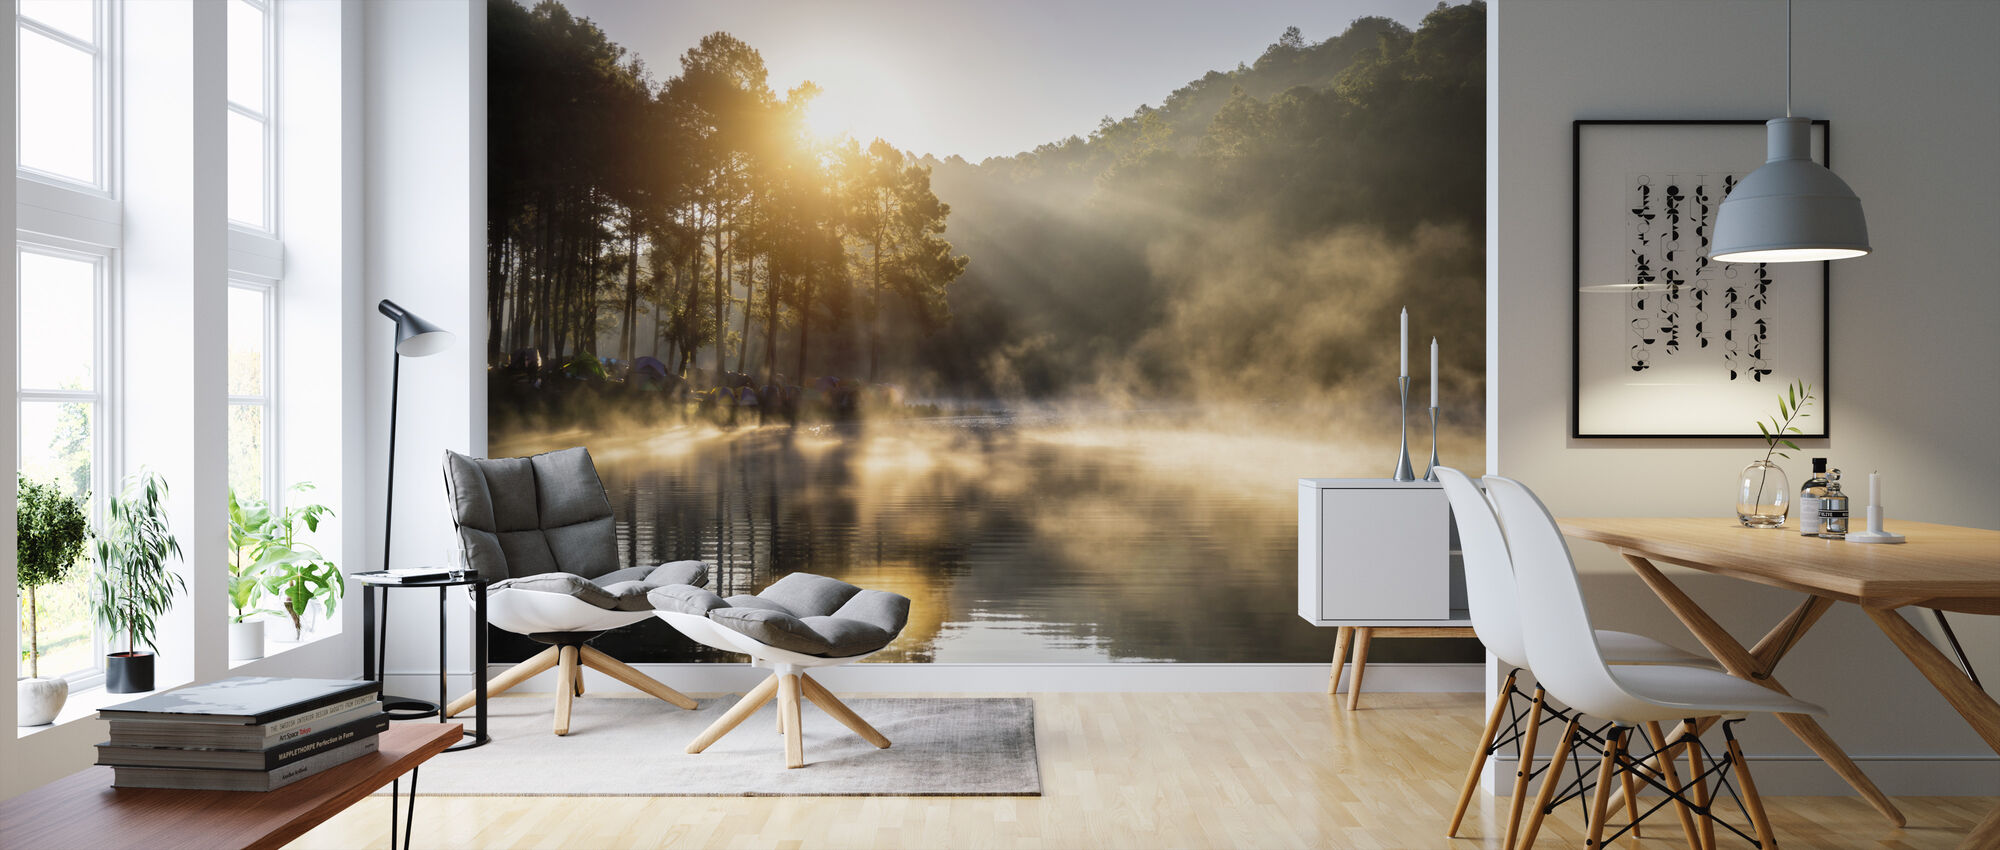 Camping in the Pine Forest - Wallpaper - Living Room